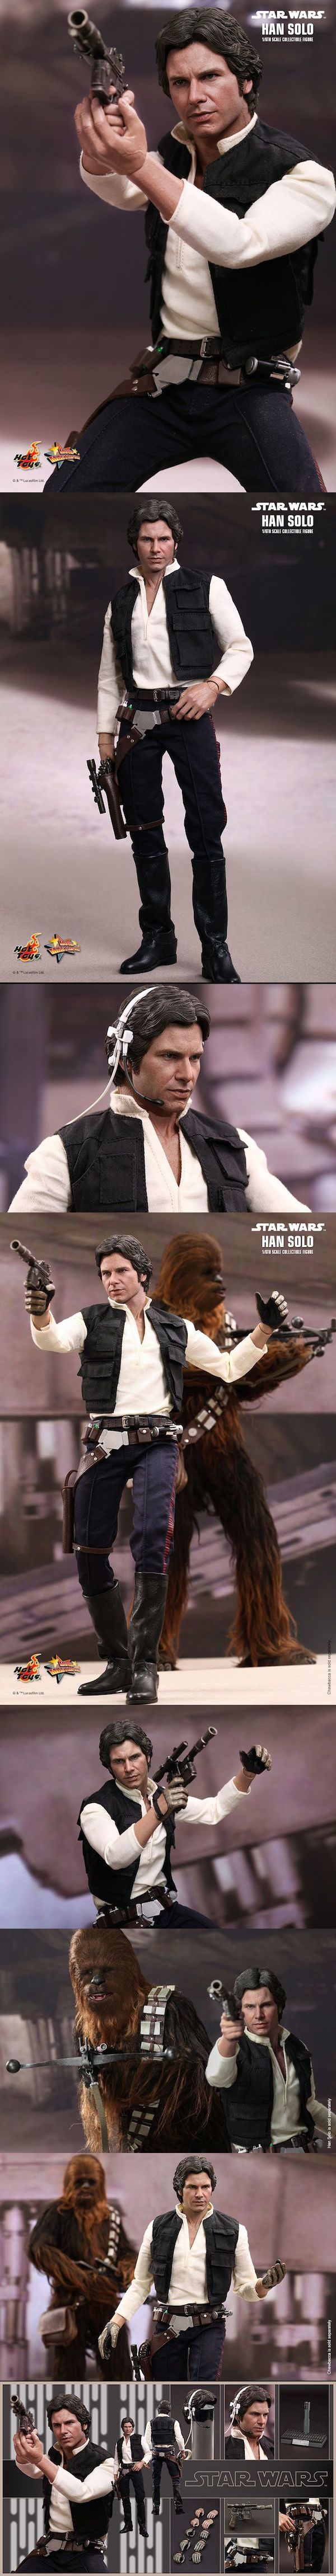 The New Hot Toys Star Wars Han Solo Figure is Simply Incredible!